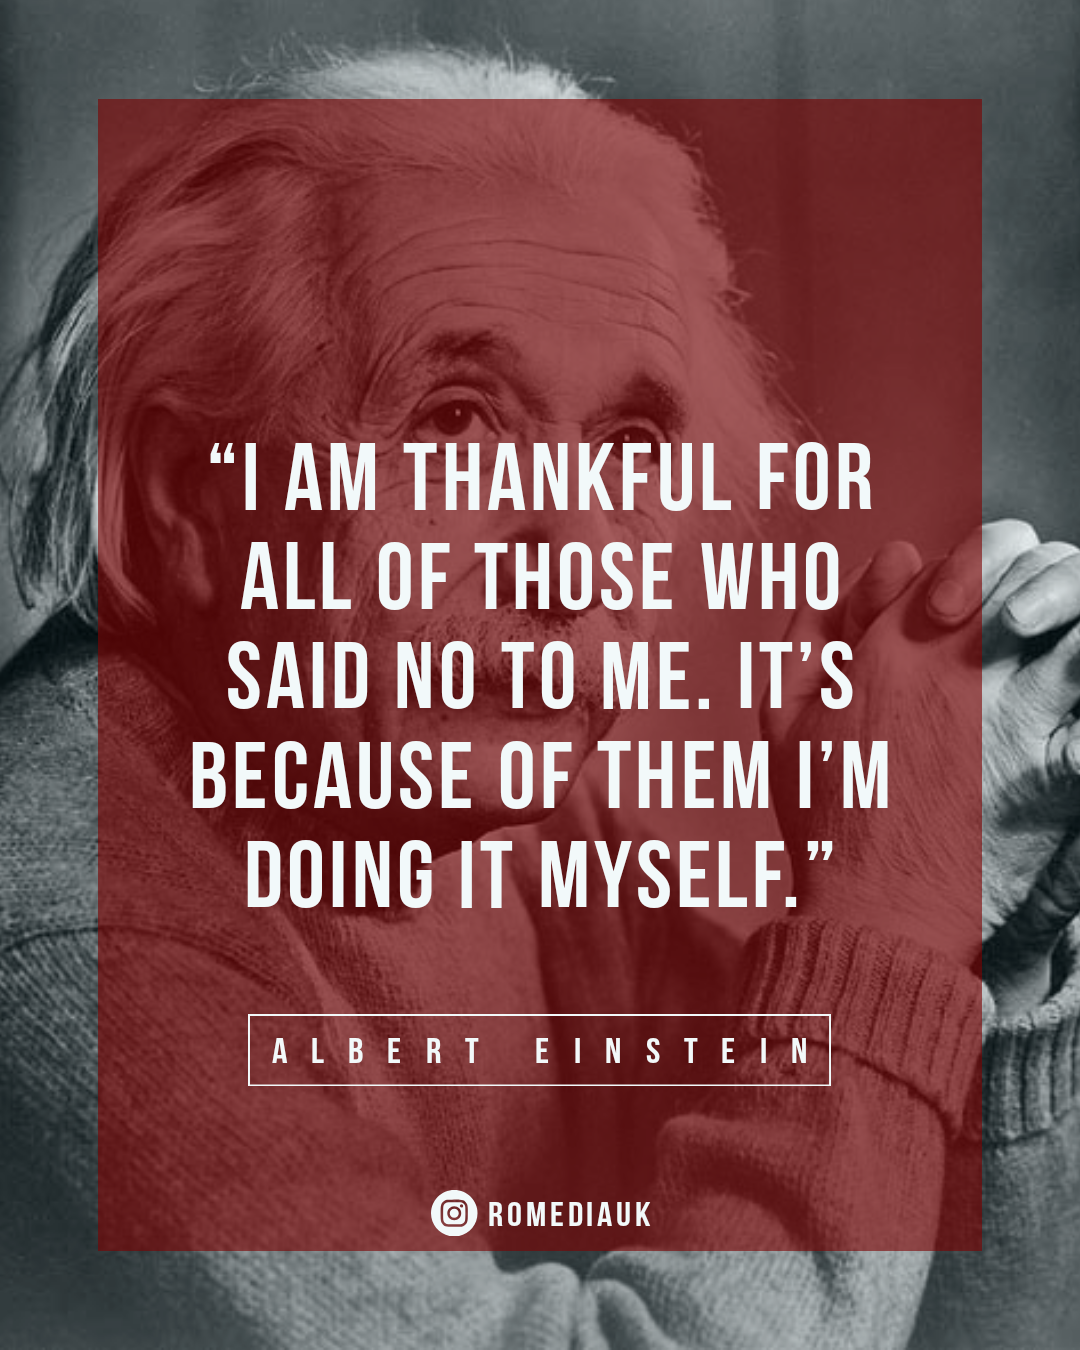 """I am thankful for all those who said no to me. It's because of them I'm doing it myself."" – Albert Einstein [1080×1350]"